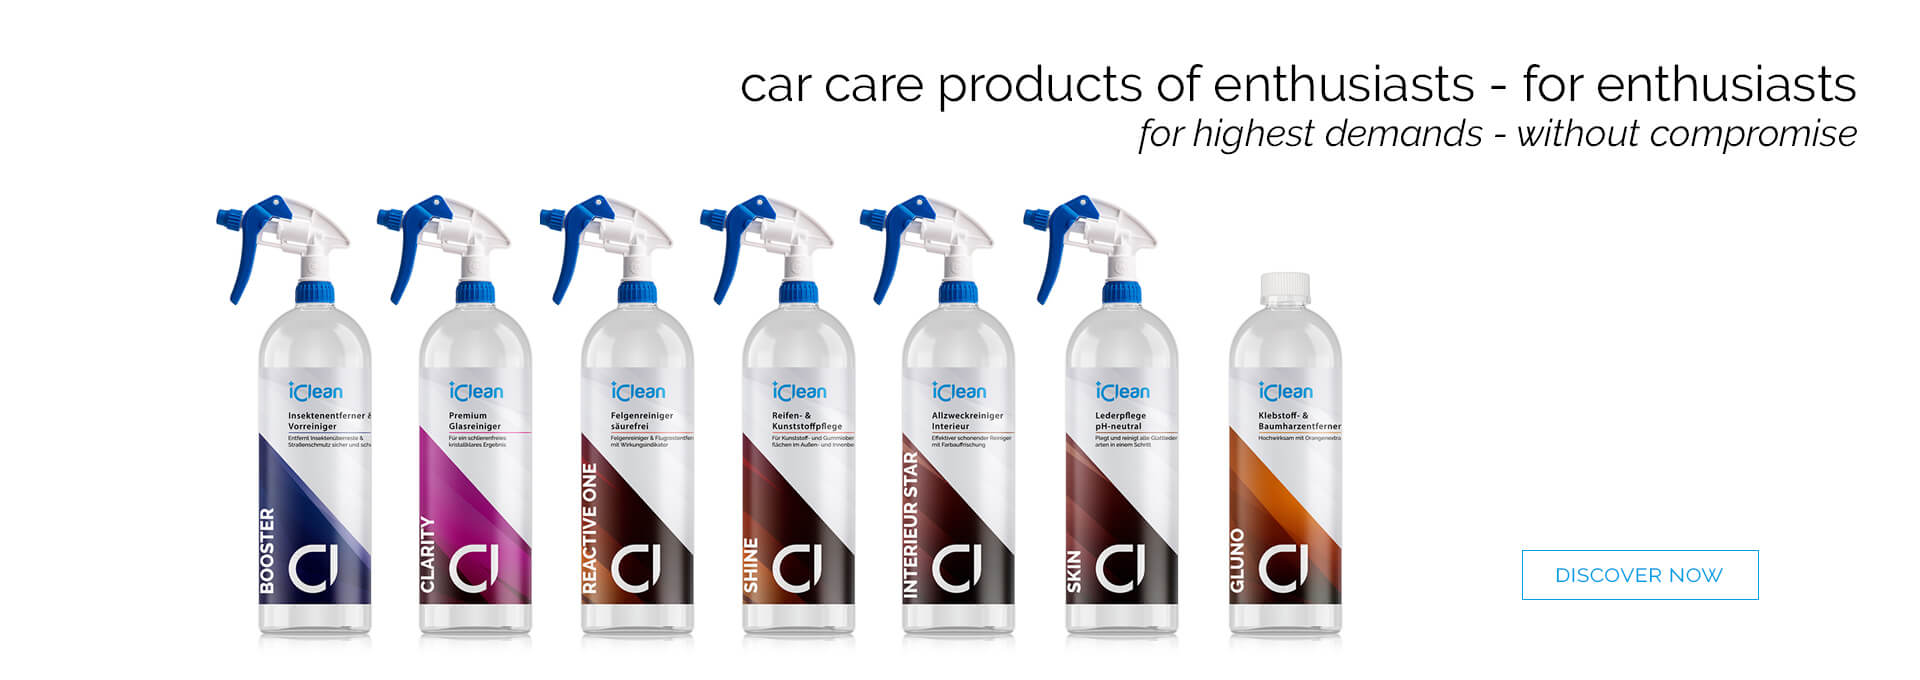 The all new iClean product line